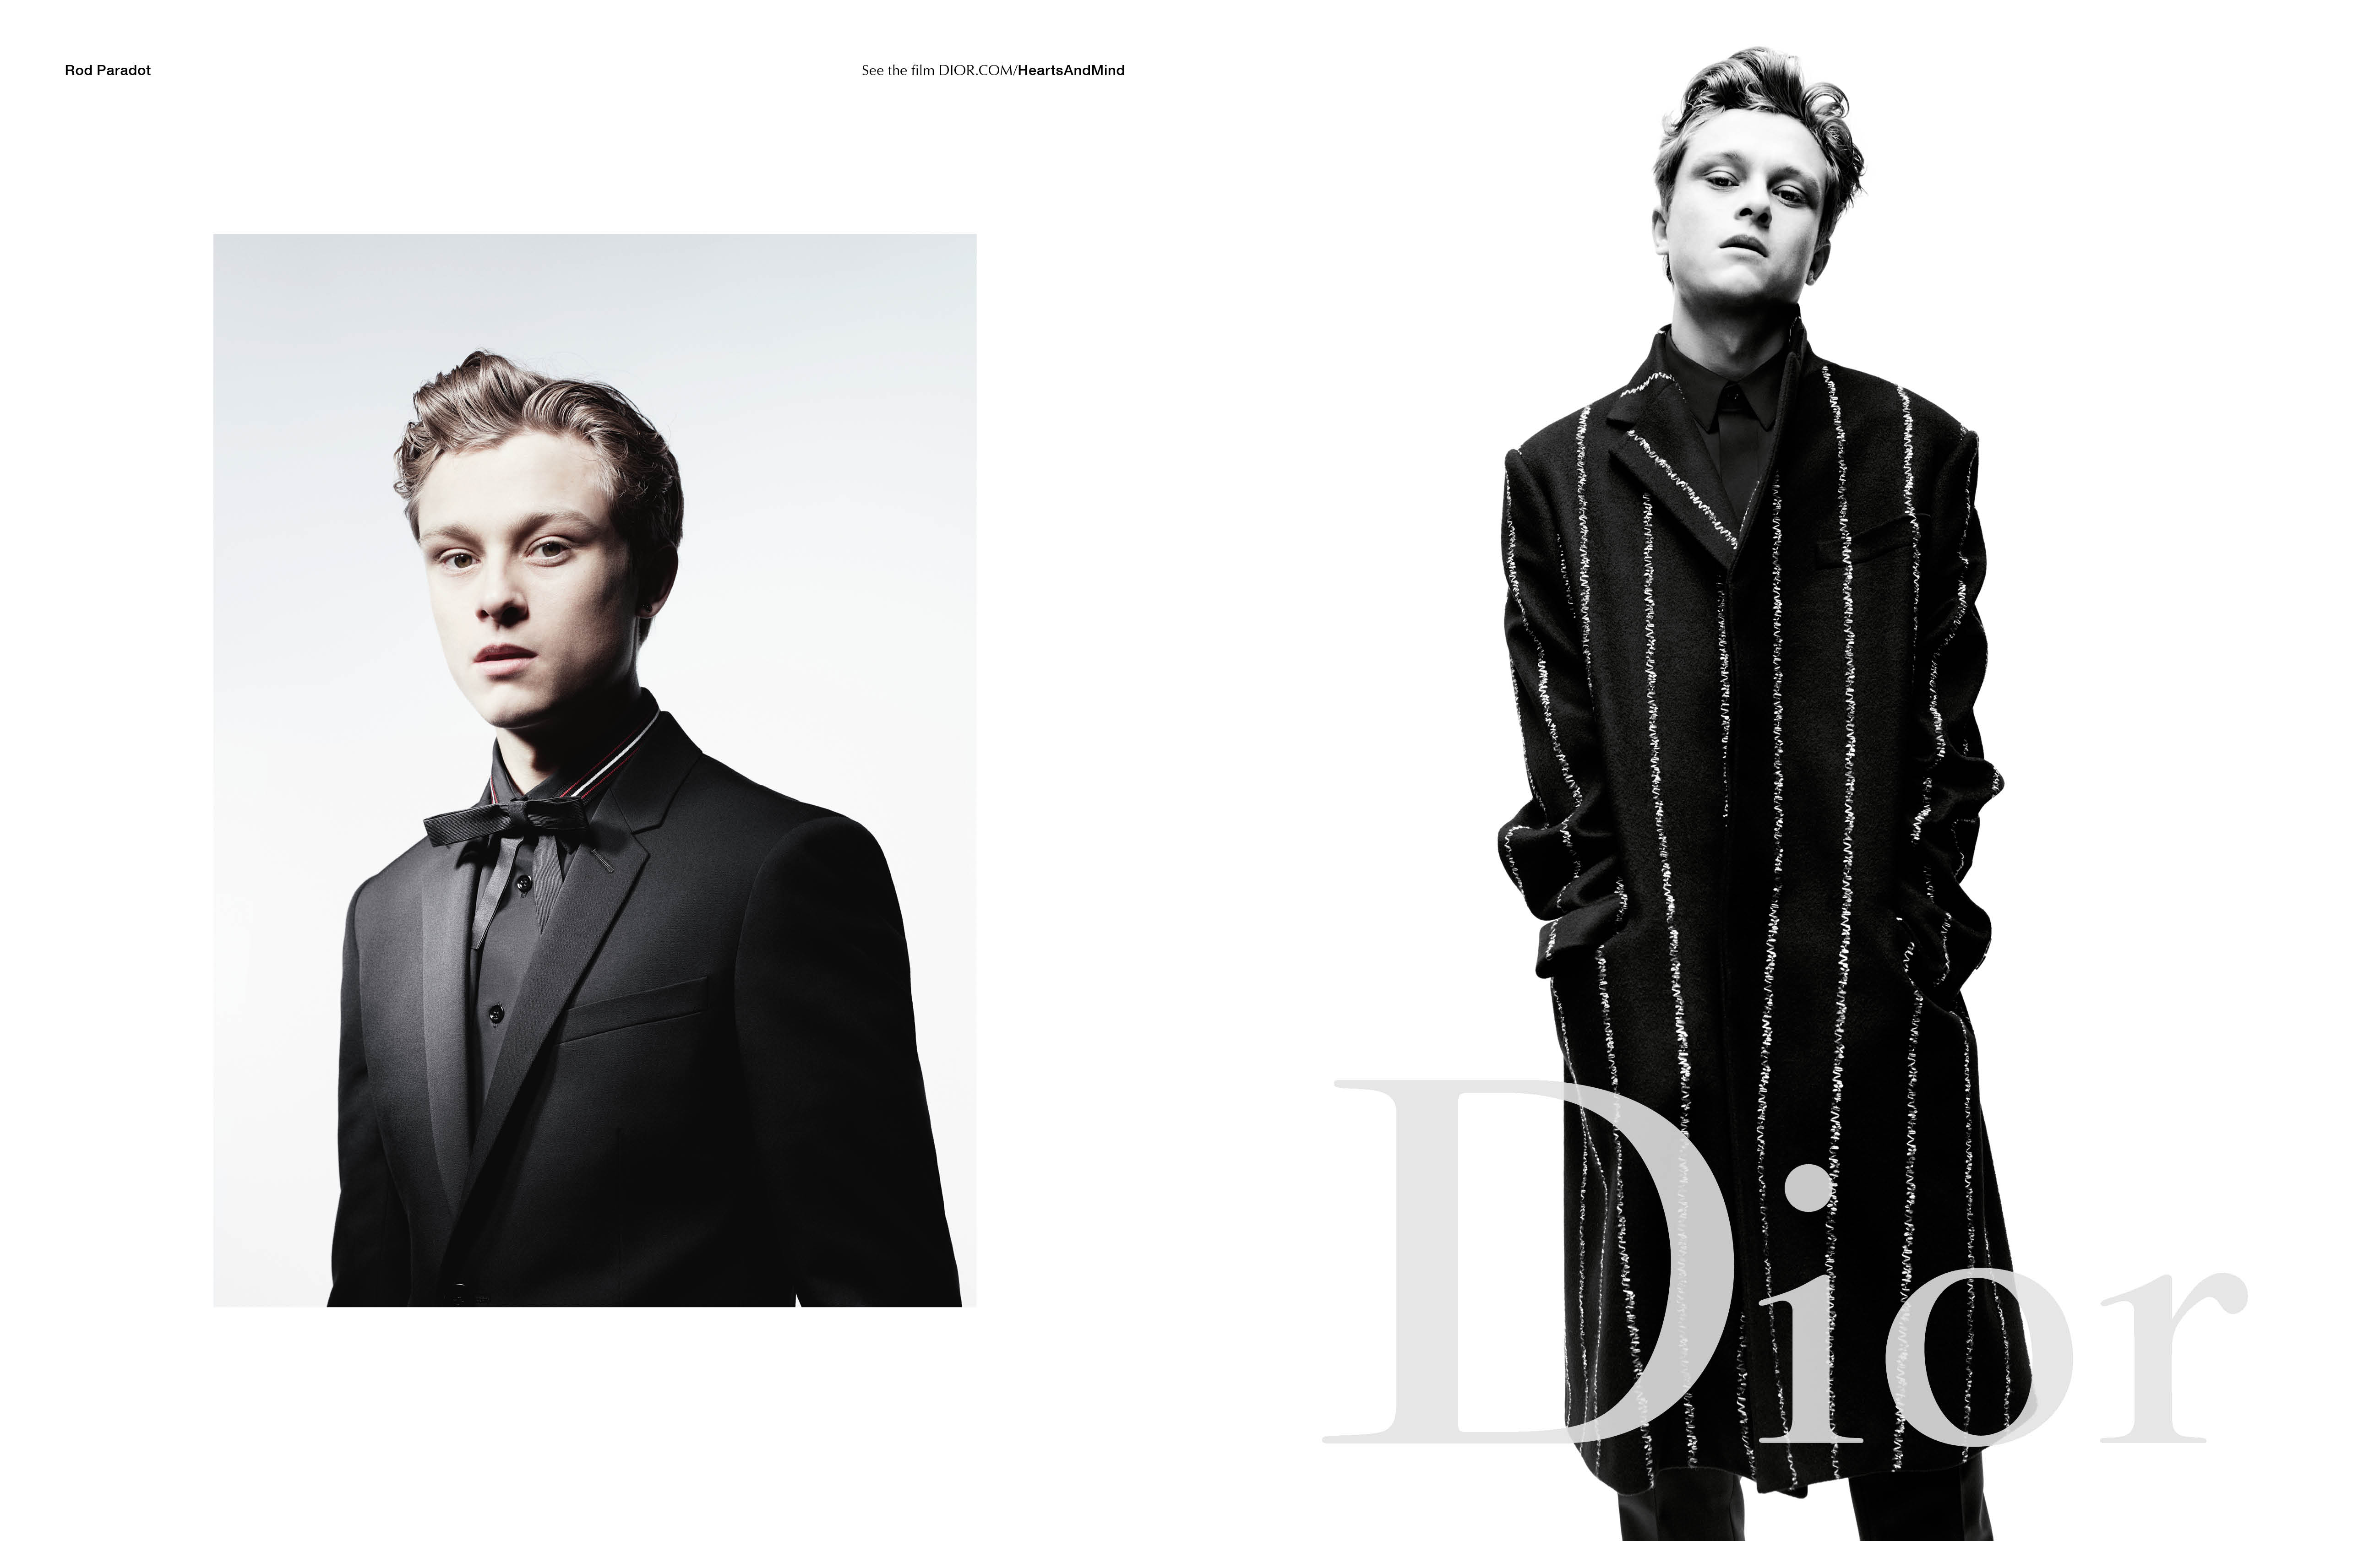 Dior Homme Fall Winter 2016 campaign